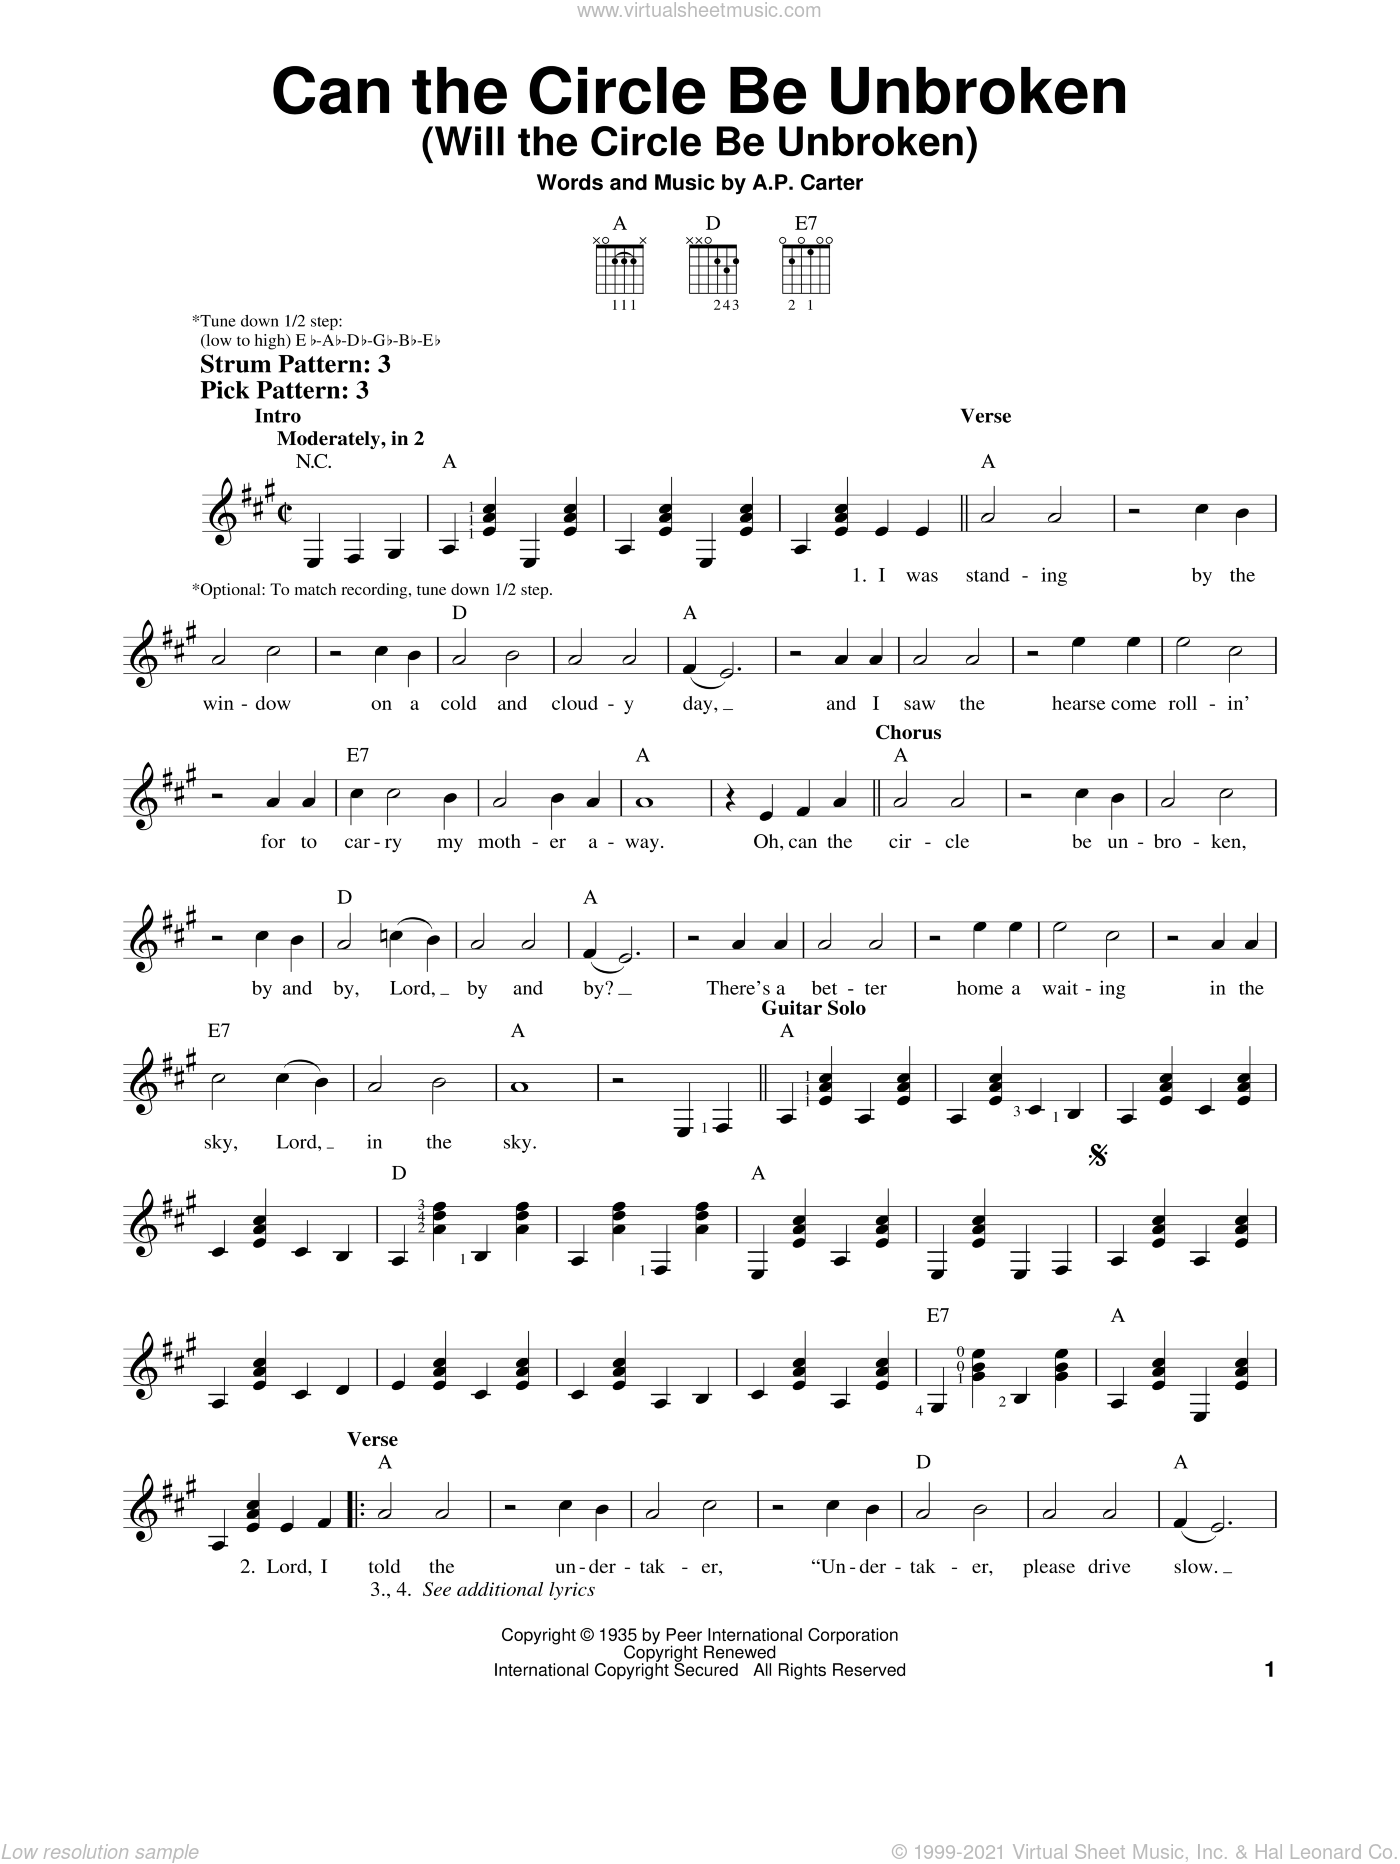 Can The Circle Be Unbroken (Will The Circle Be Unbroken) sheet music for guitar solo (chords) by A.P. Carter